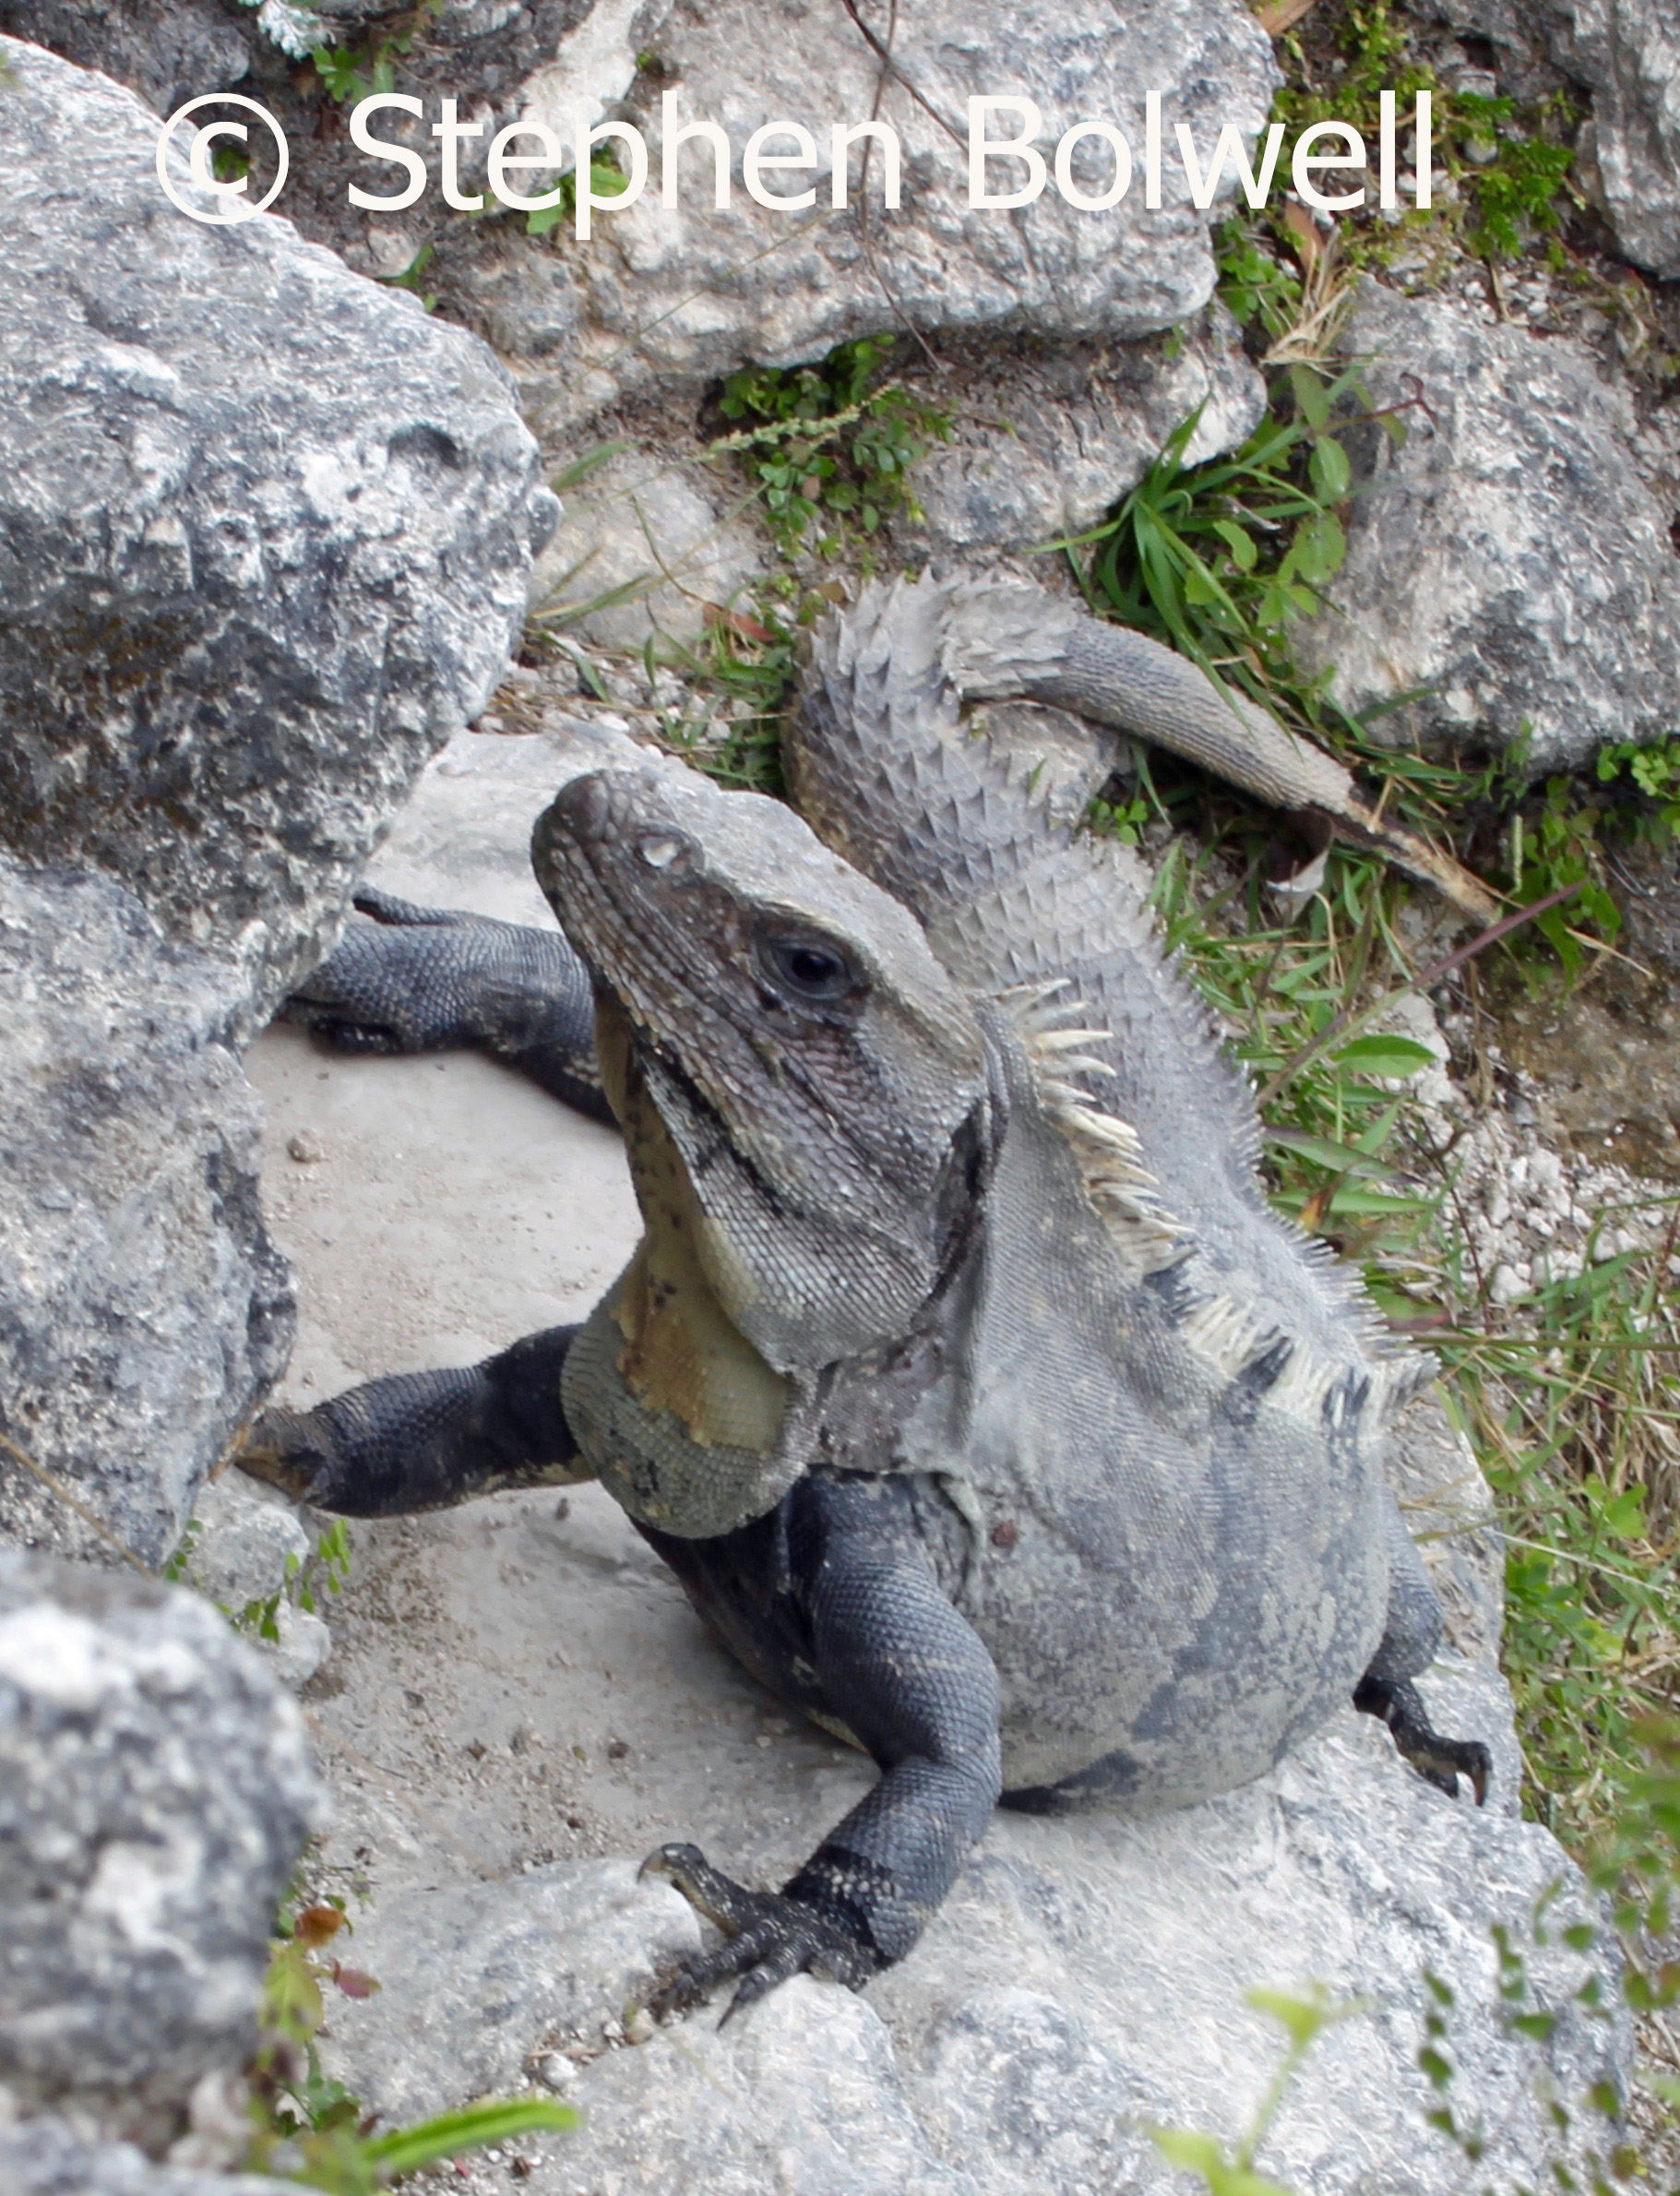 The spiny-tailed iguana is often seen on rocky outcrops - this then a perfect place to see it. The common green iguana will more likely to be seen up a tree or in vegetation.